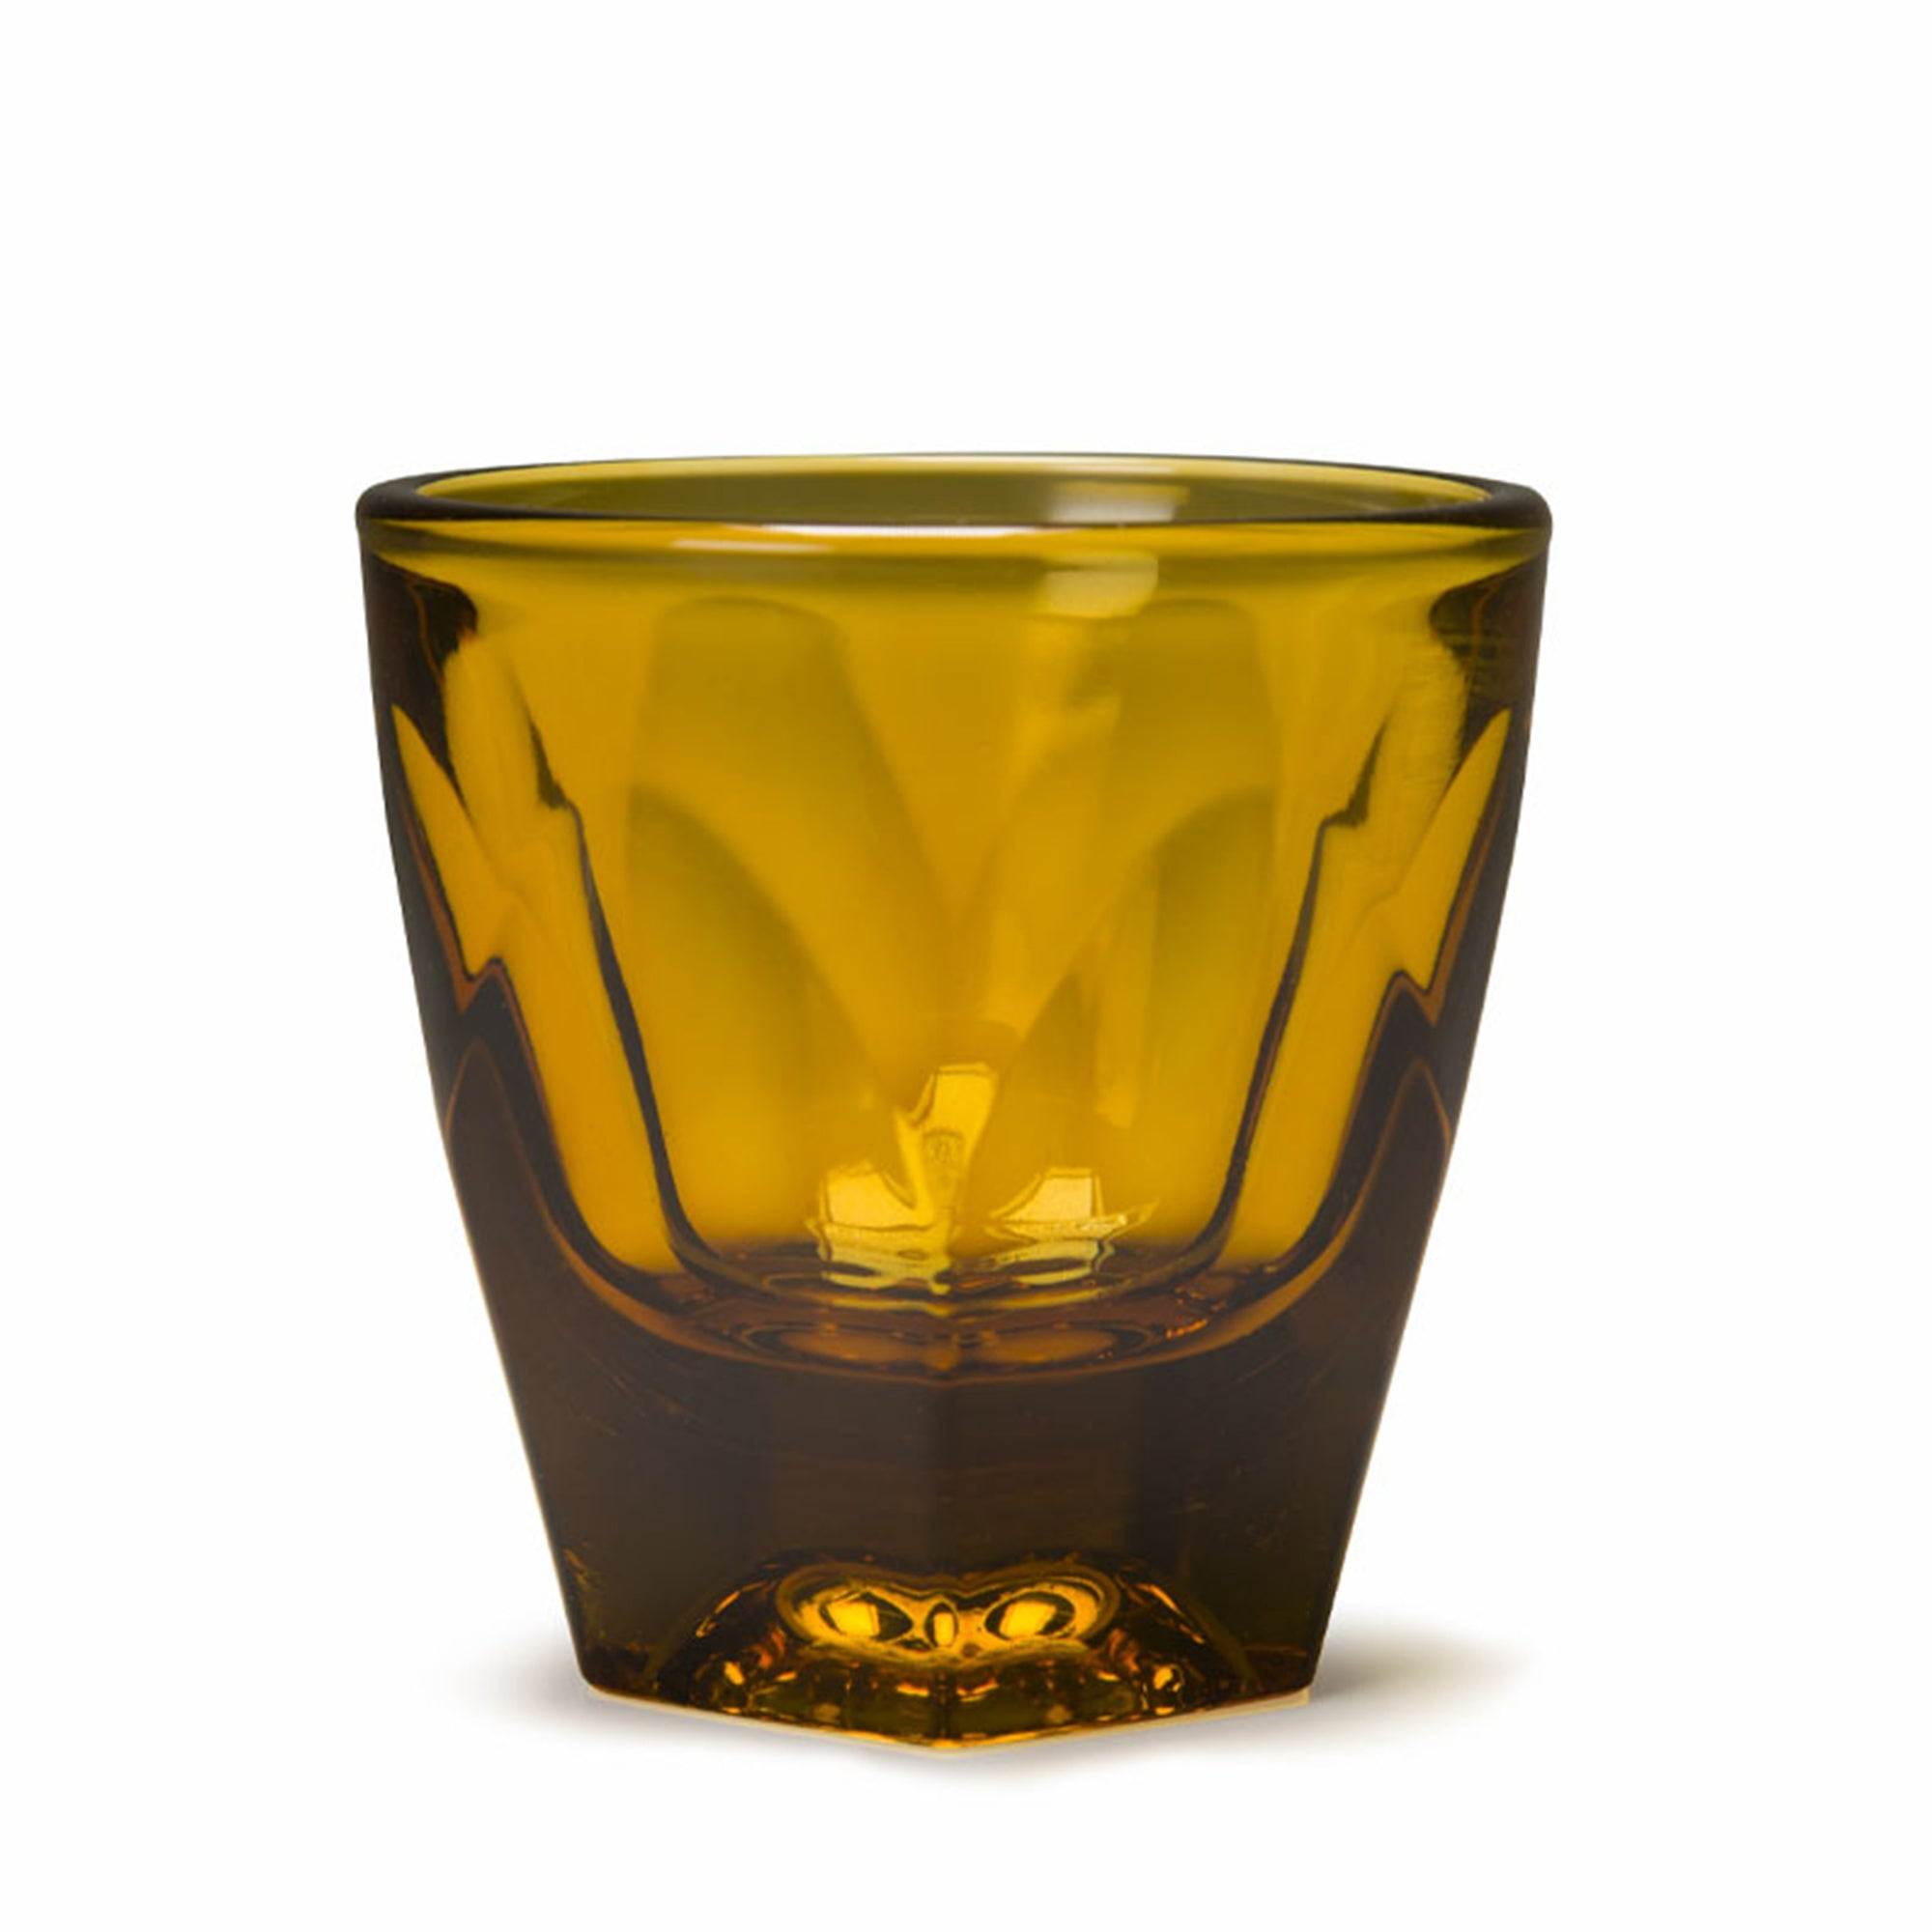 NN Vero Cortado Glass - Amber 125ml - Espresso Gear